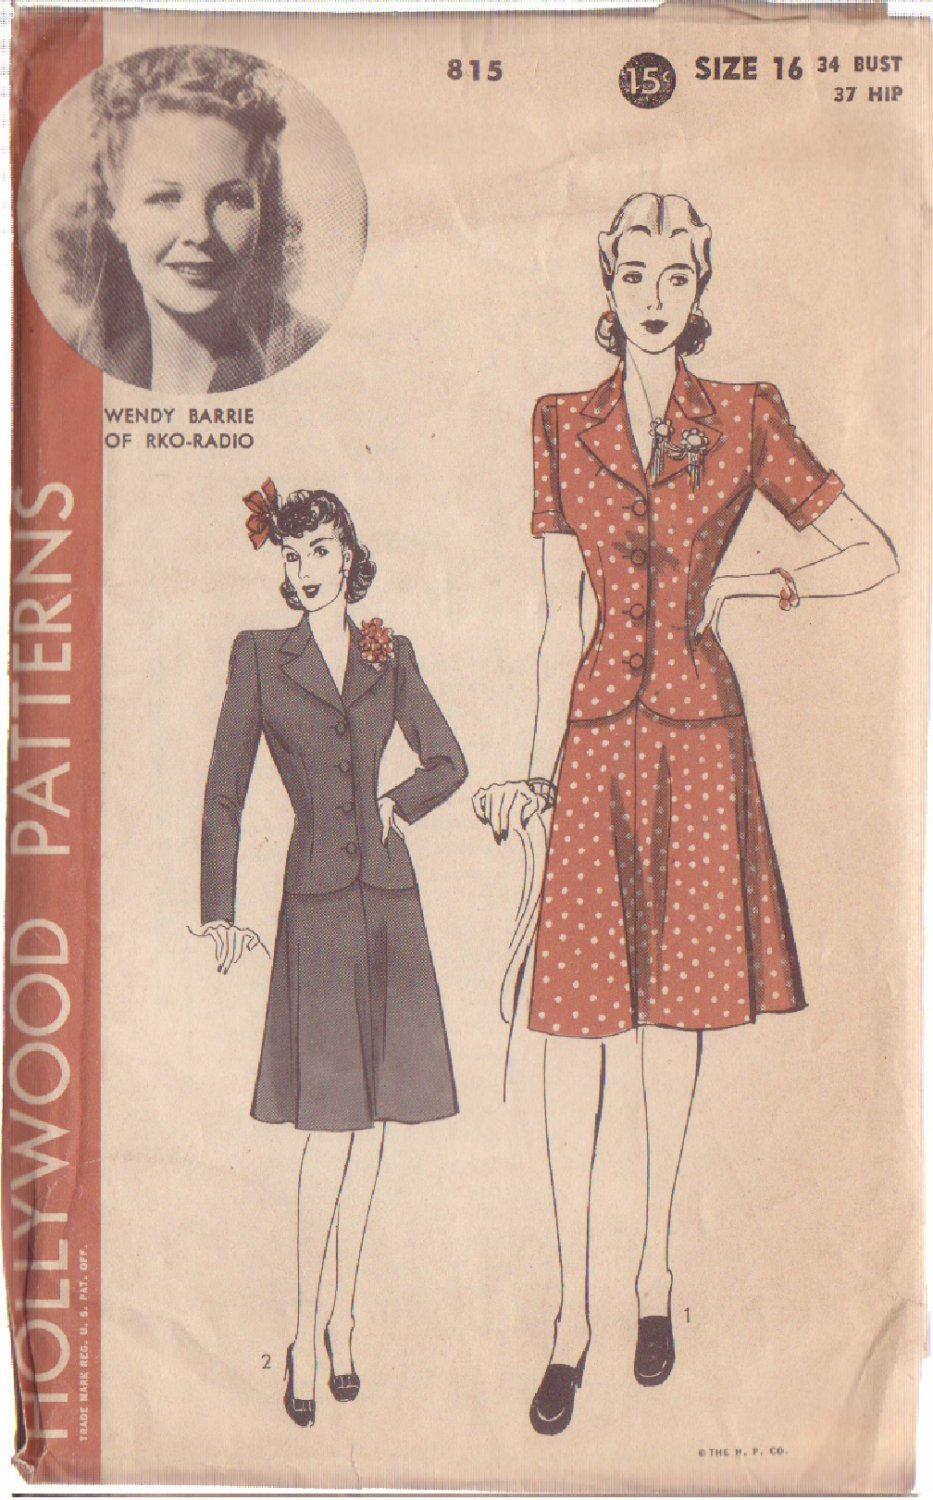 HOLLYWOOD PATTERN 815 MISSES' 2 PC SUIT 2 STYLES SIZE 16 WENDY BARRIE